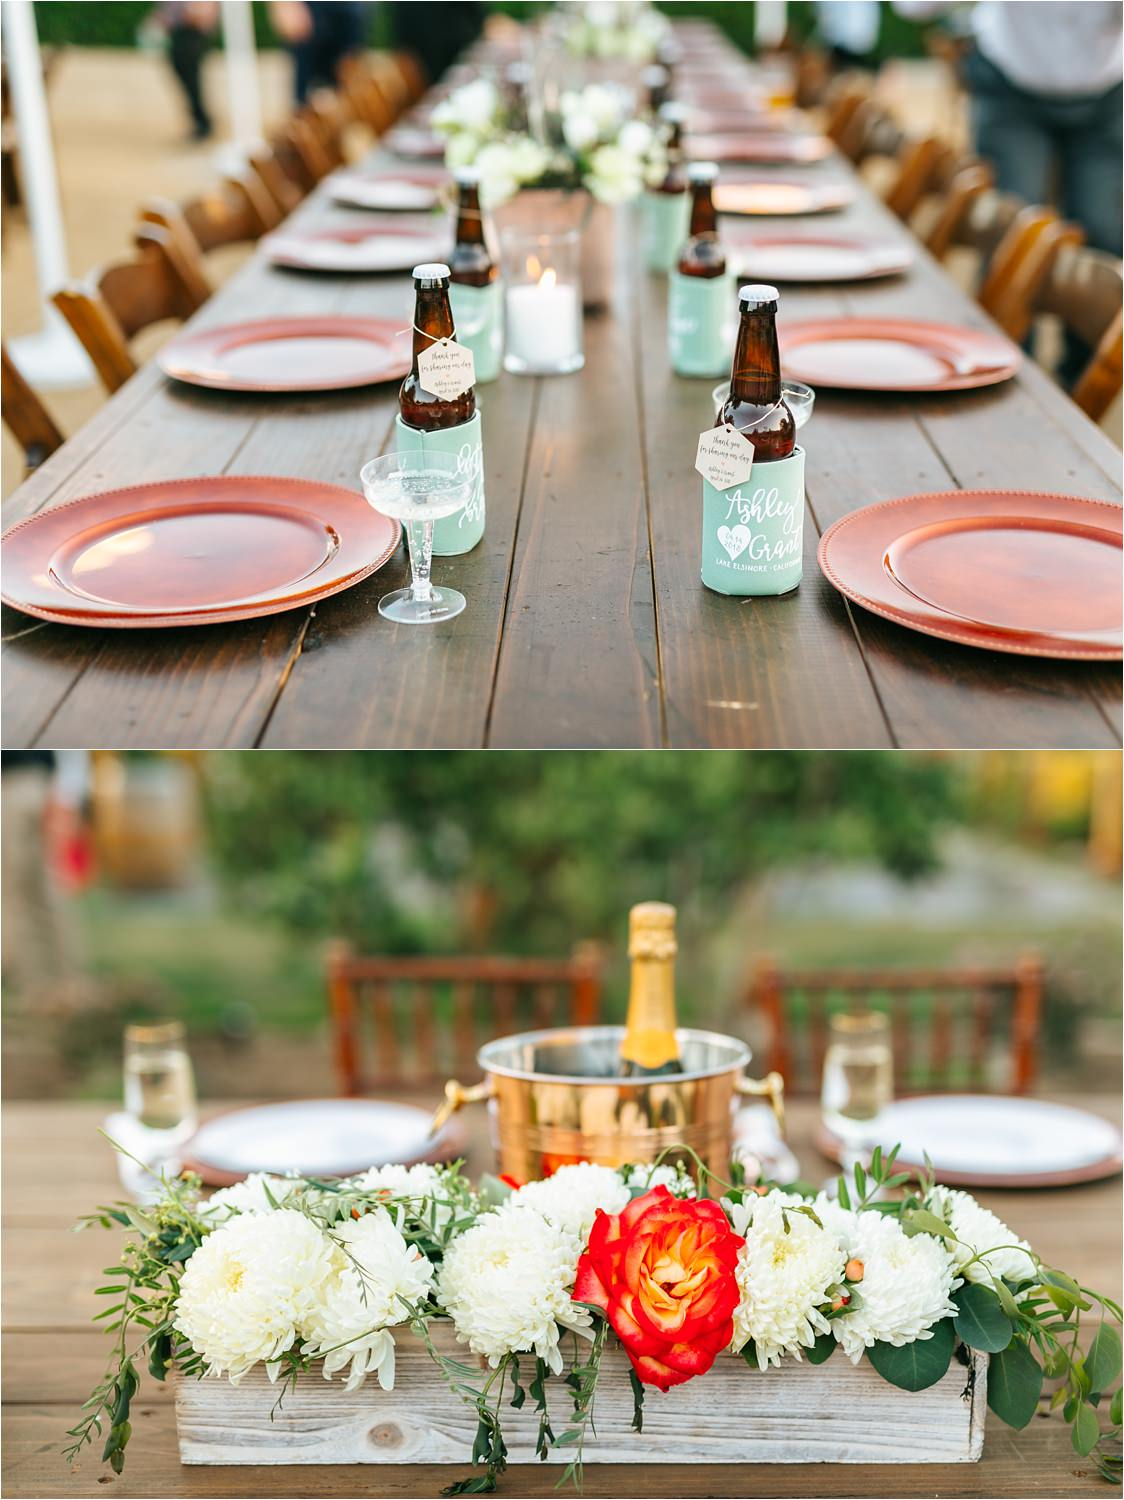 Wedding Reception Details - Backyard Wedding Inspiration - https://brittneyhannonphotography.com